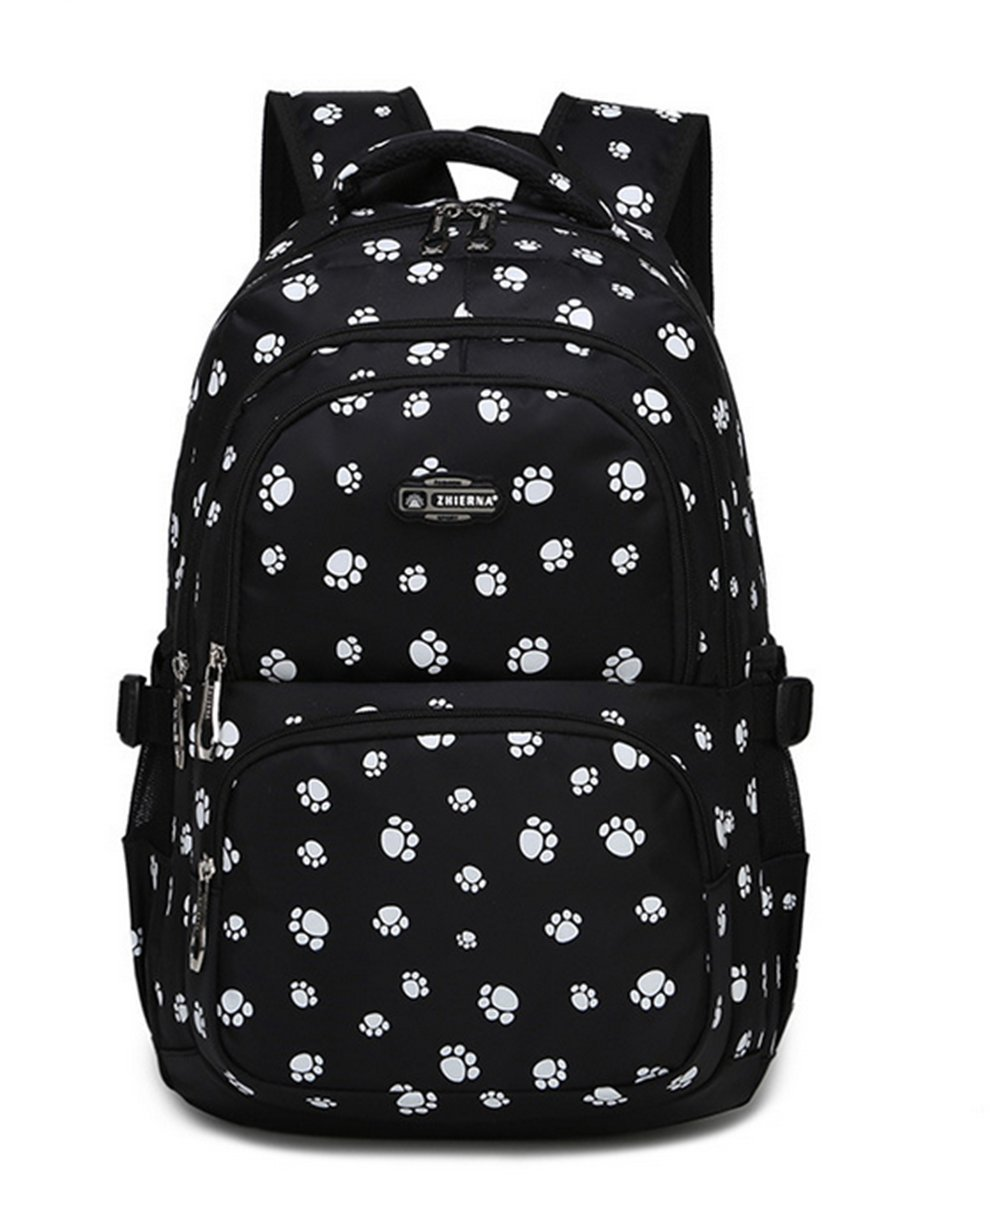 Fanci Lovely Dog Paw Prints Elementary Middle School Backpack Bookbag for Teen Girls Waterproof High School Bag by Fanci (Image #1)